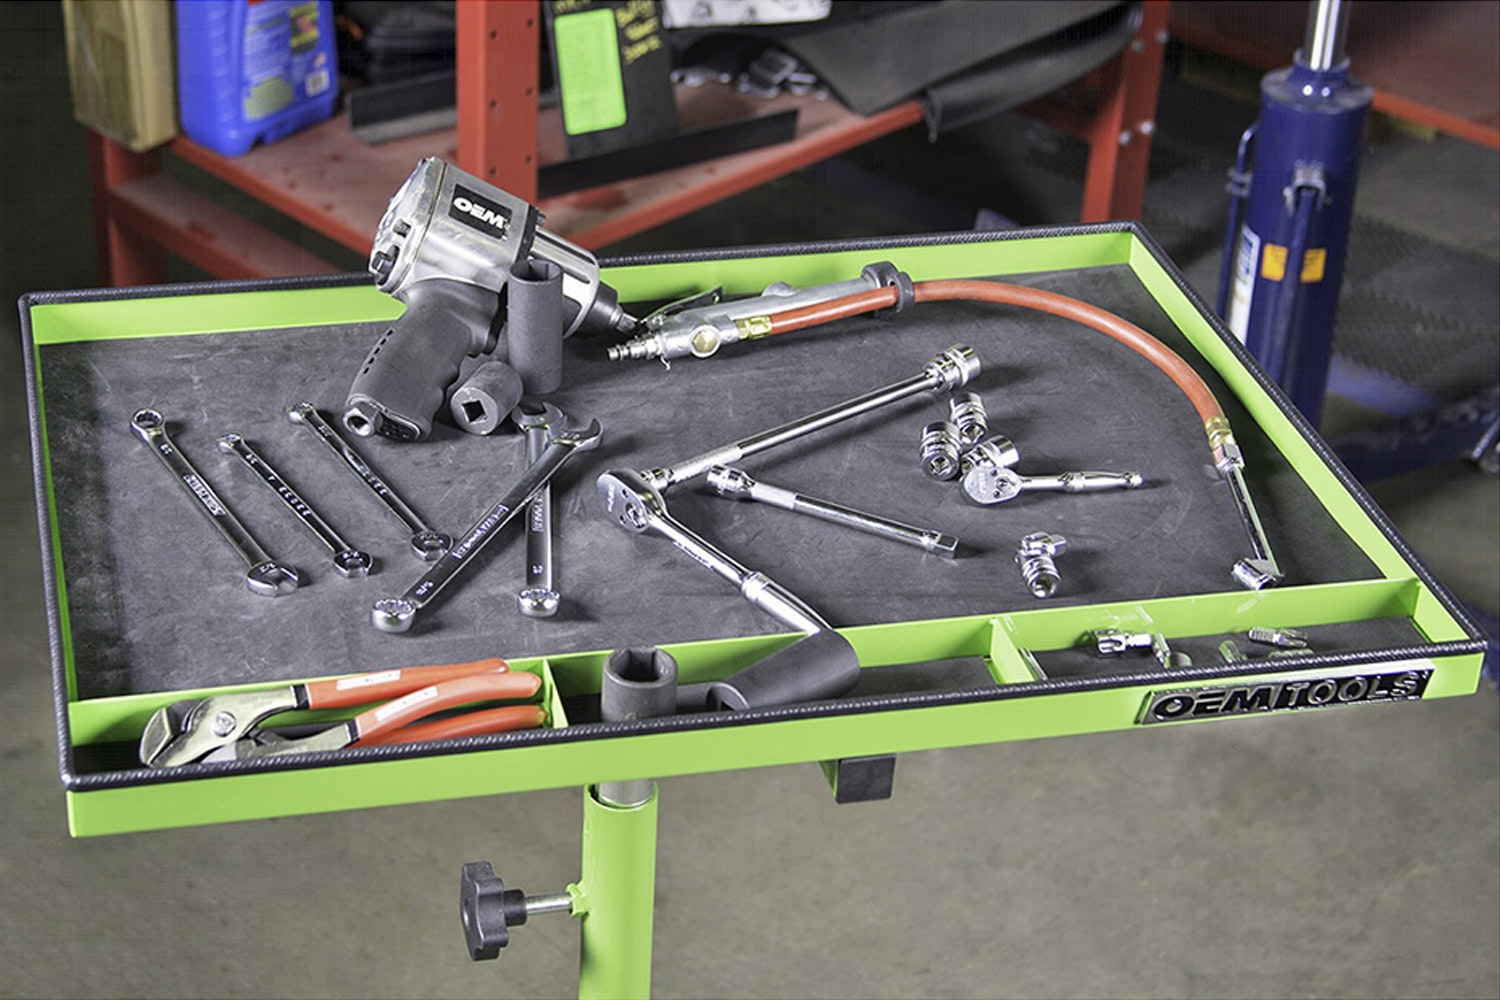 OEM Tools Portable Tear-Down Tray